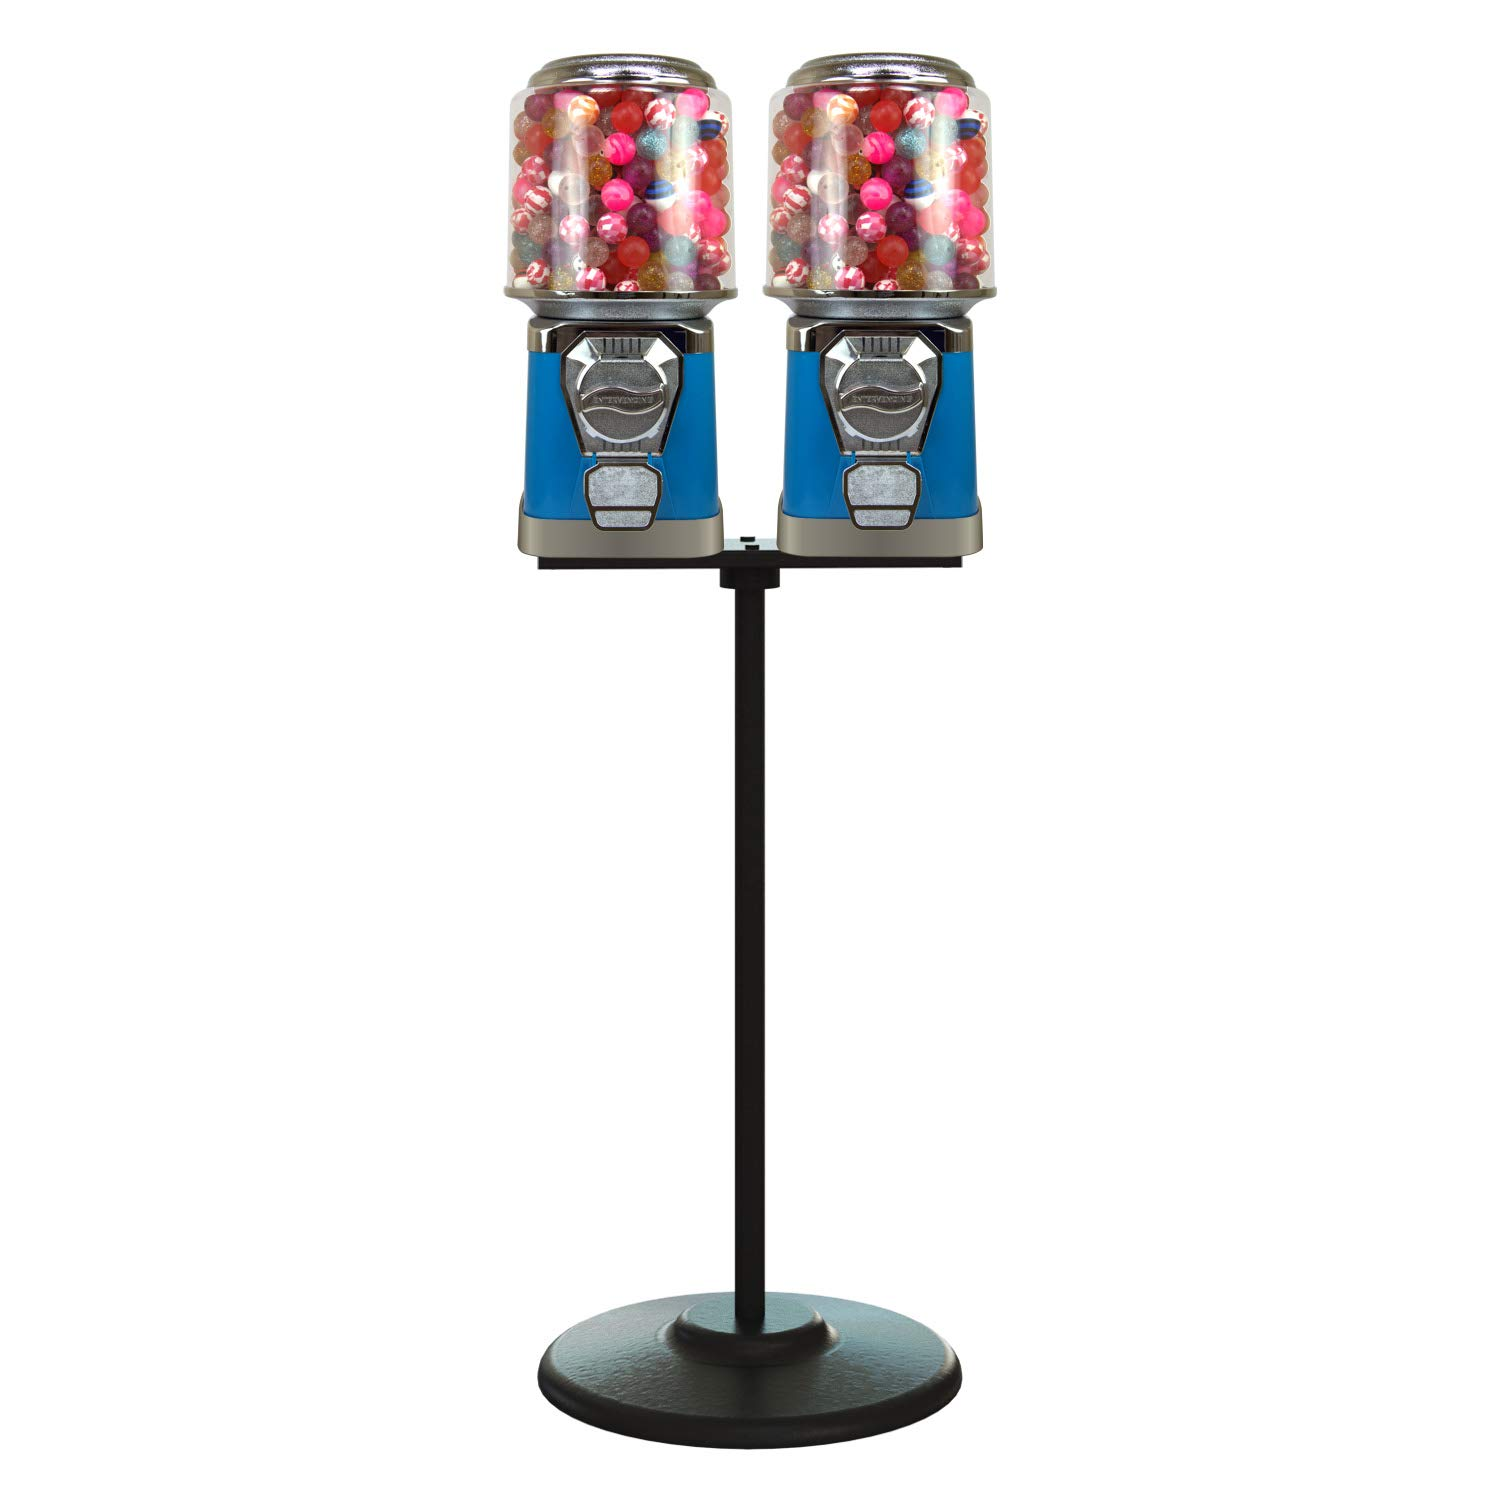 Gumball Machine with Stand - 2 and Blue Machines w Max 60% 2021 spring and summer new OFF Vending